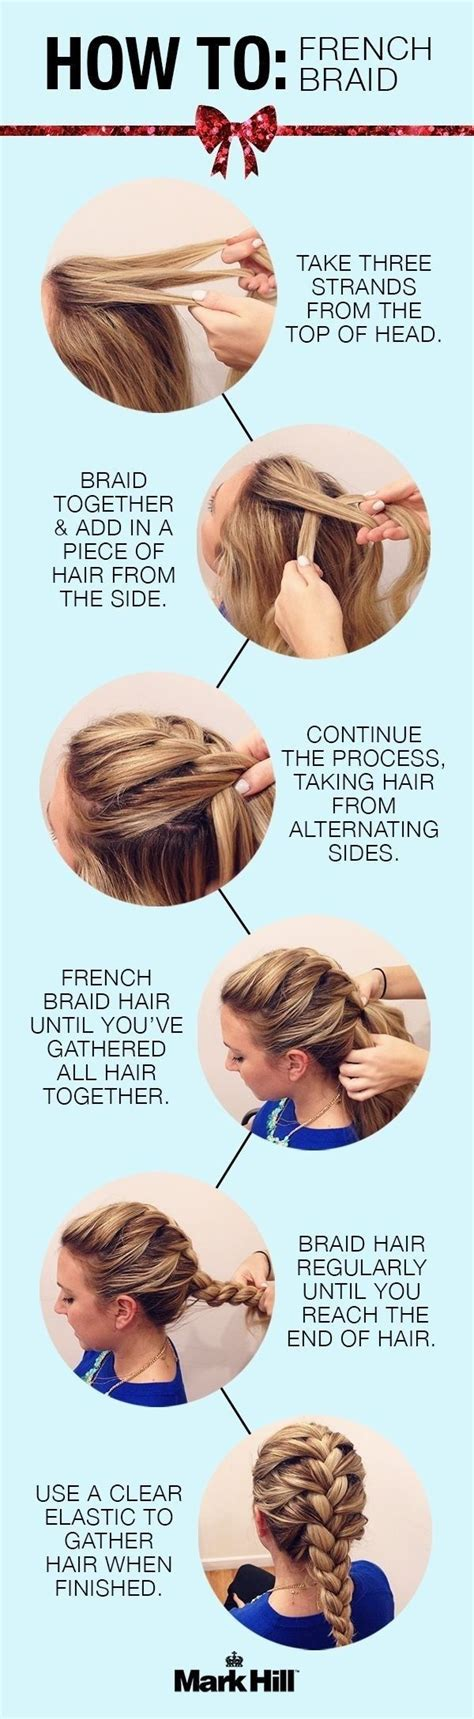 diy french braid pictures   images  facebook